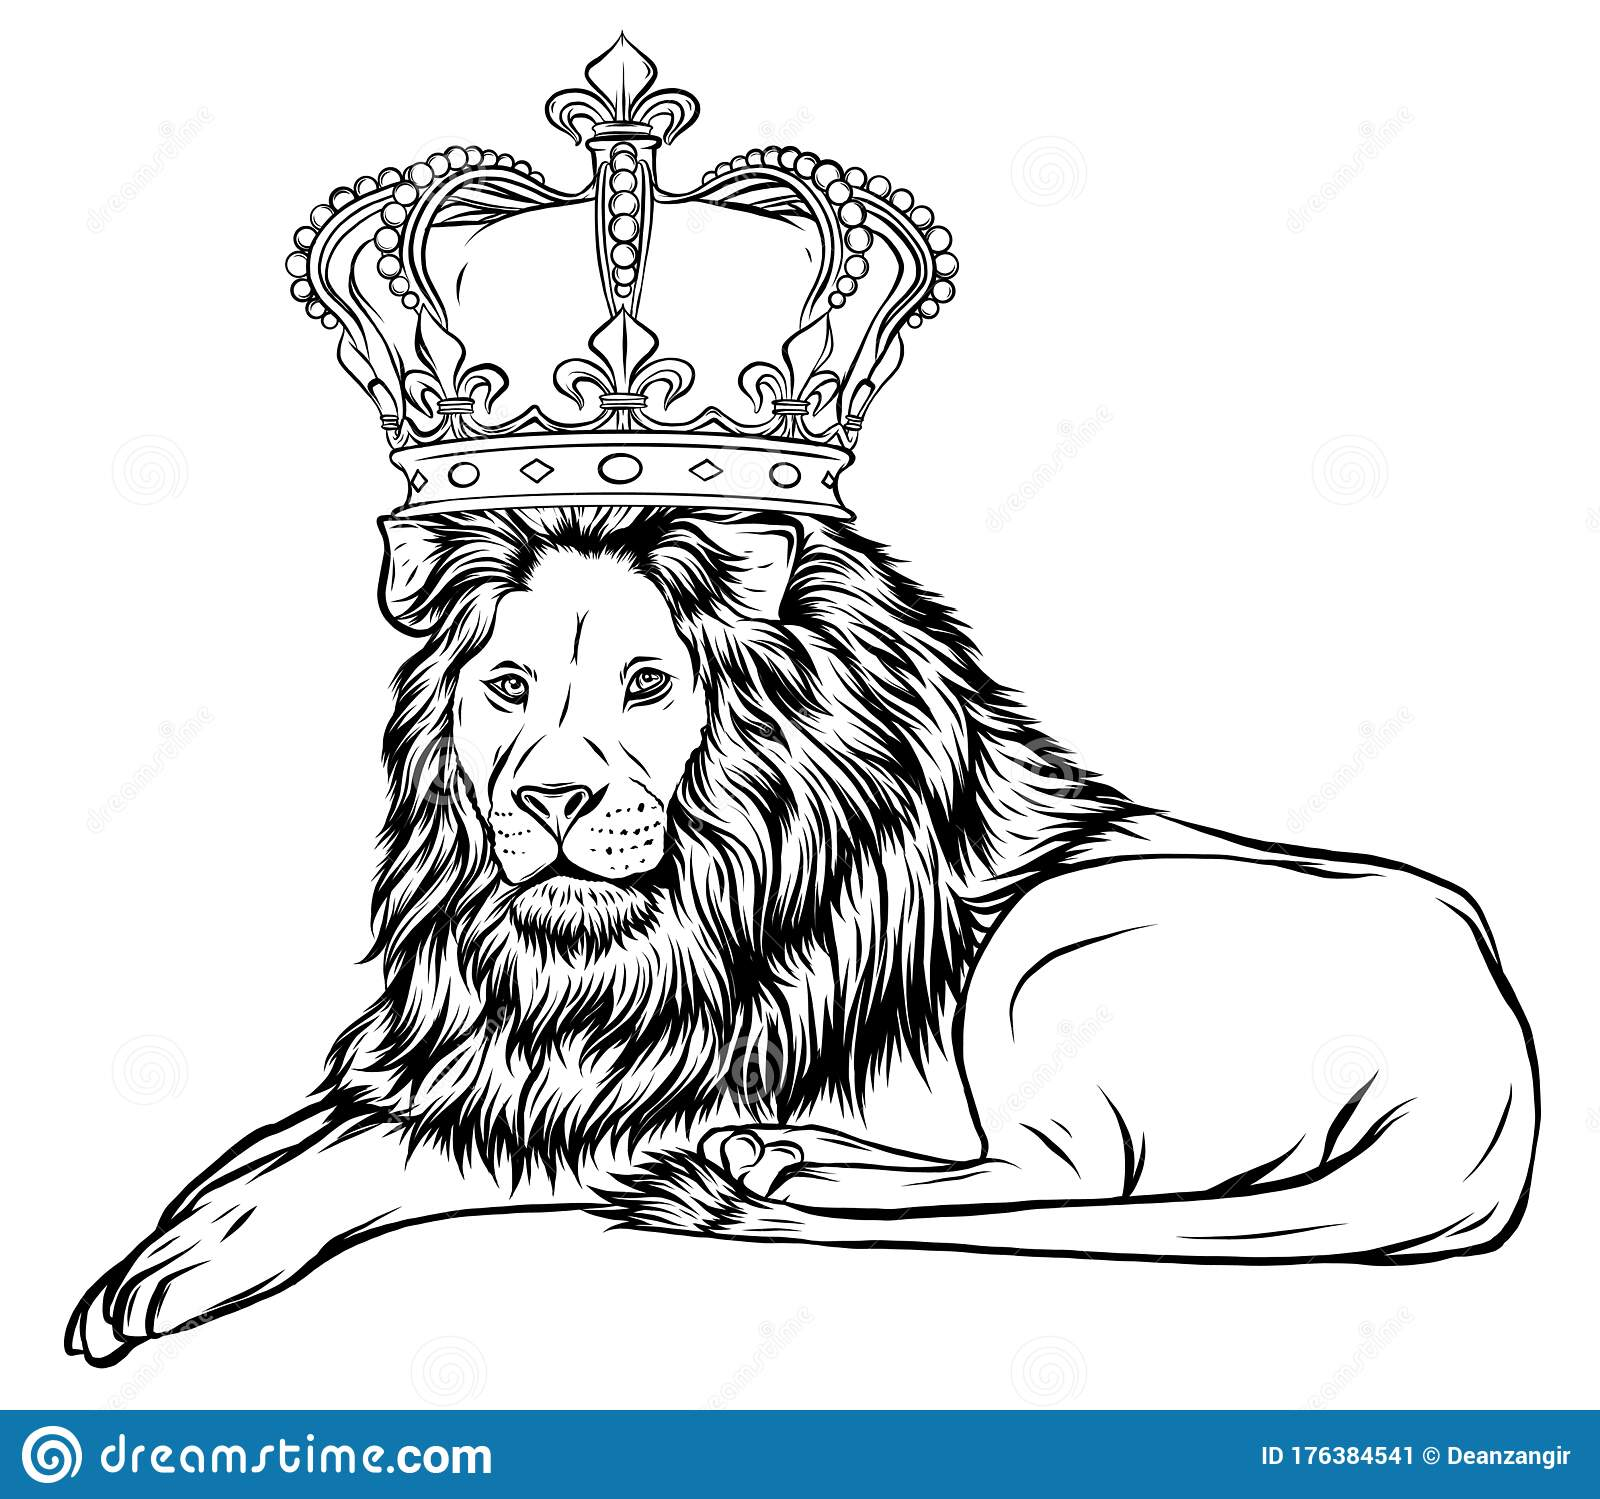 Vector Illustration The Lion King The Head Of A Lion In The Crown On A White Background Stock Vector Illustration Of Luxury Head 176384541